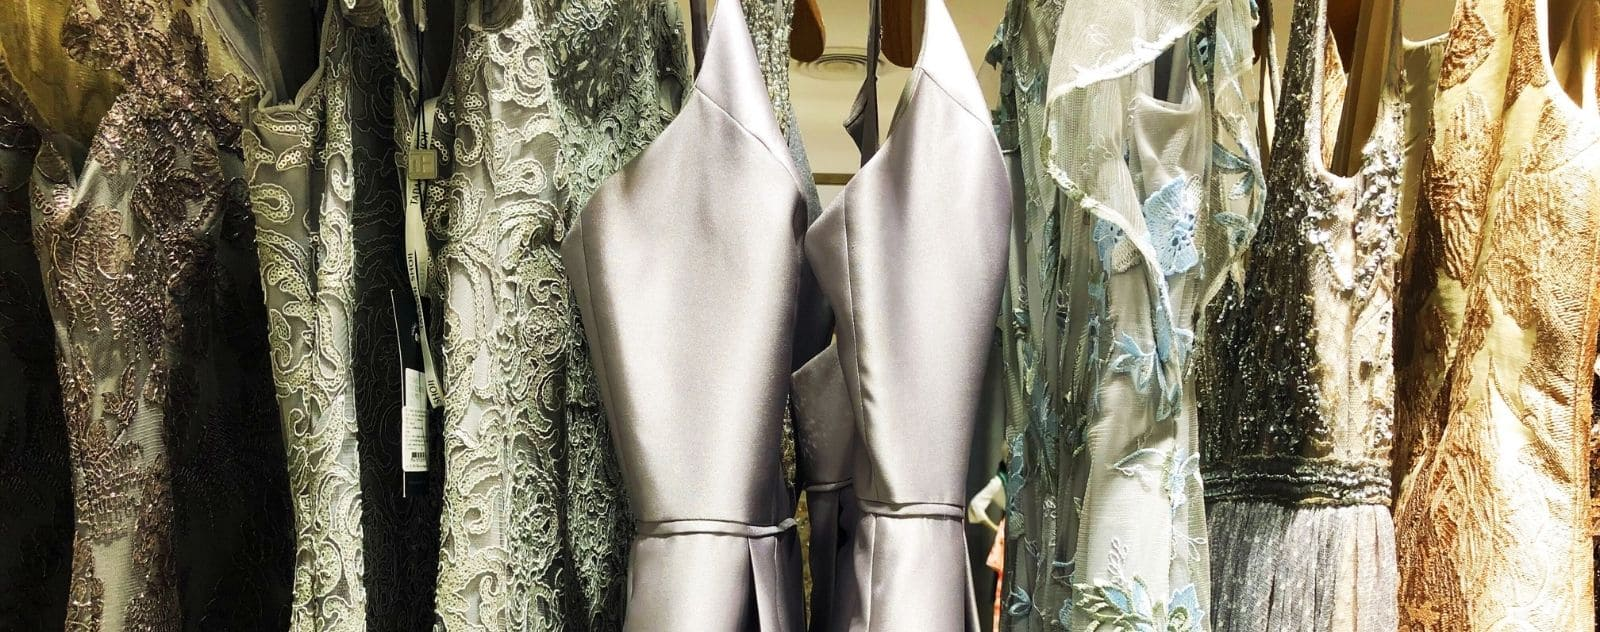 robes broderies haute couture